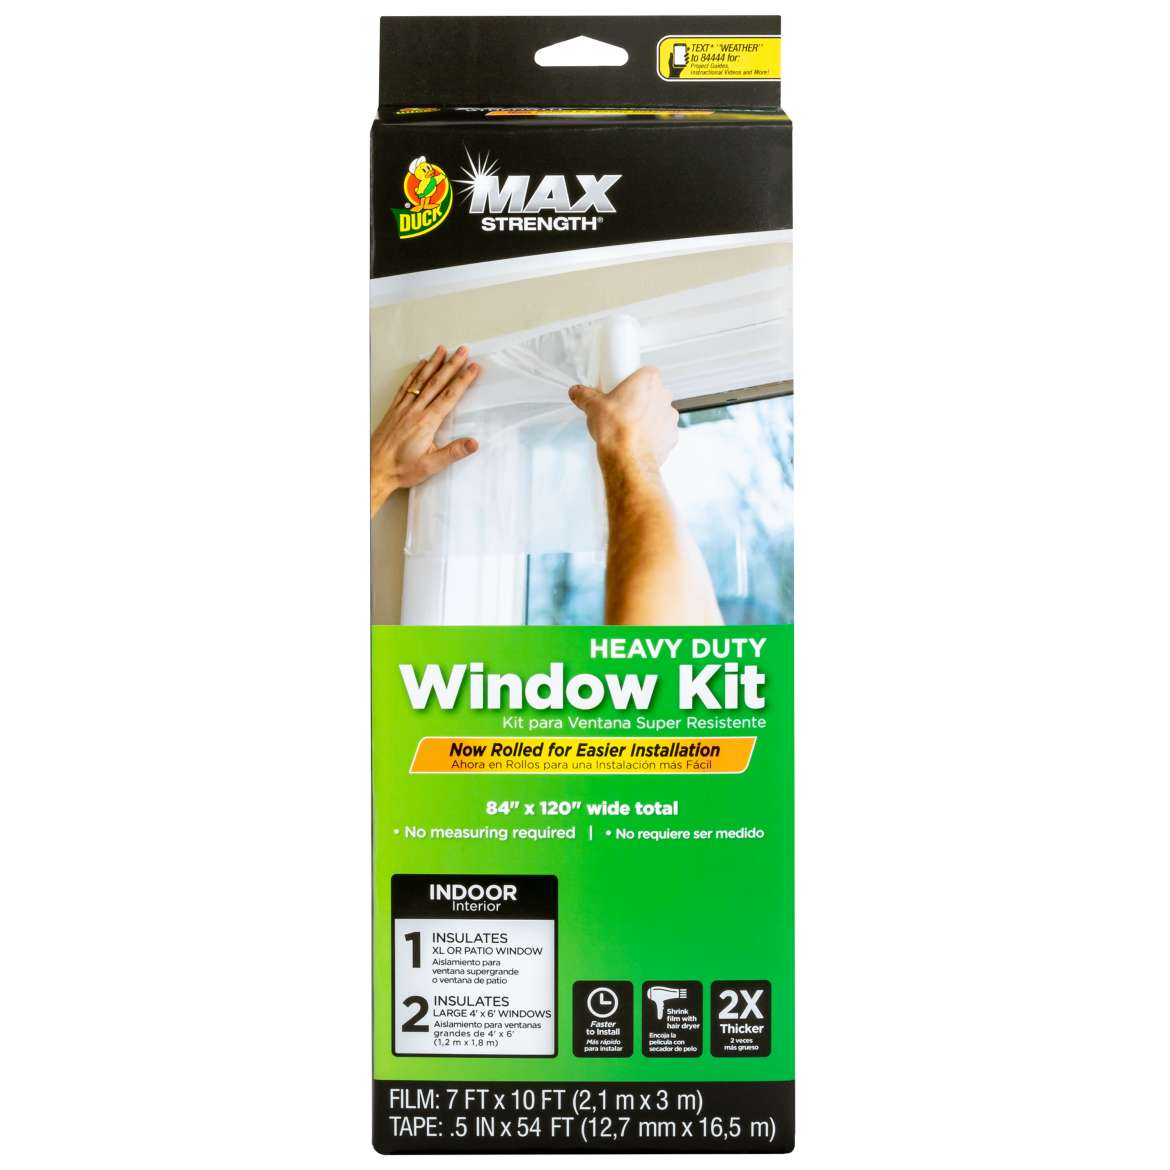 Duck Max Strength® Rolled Window Kit Image